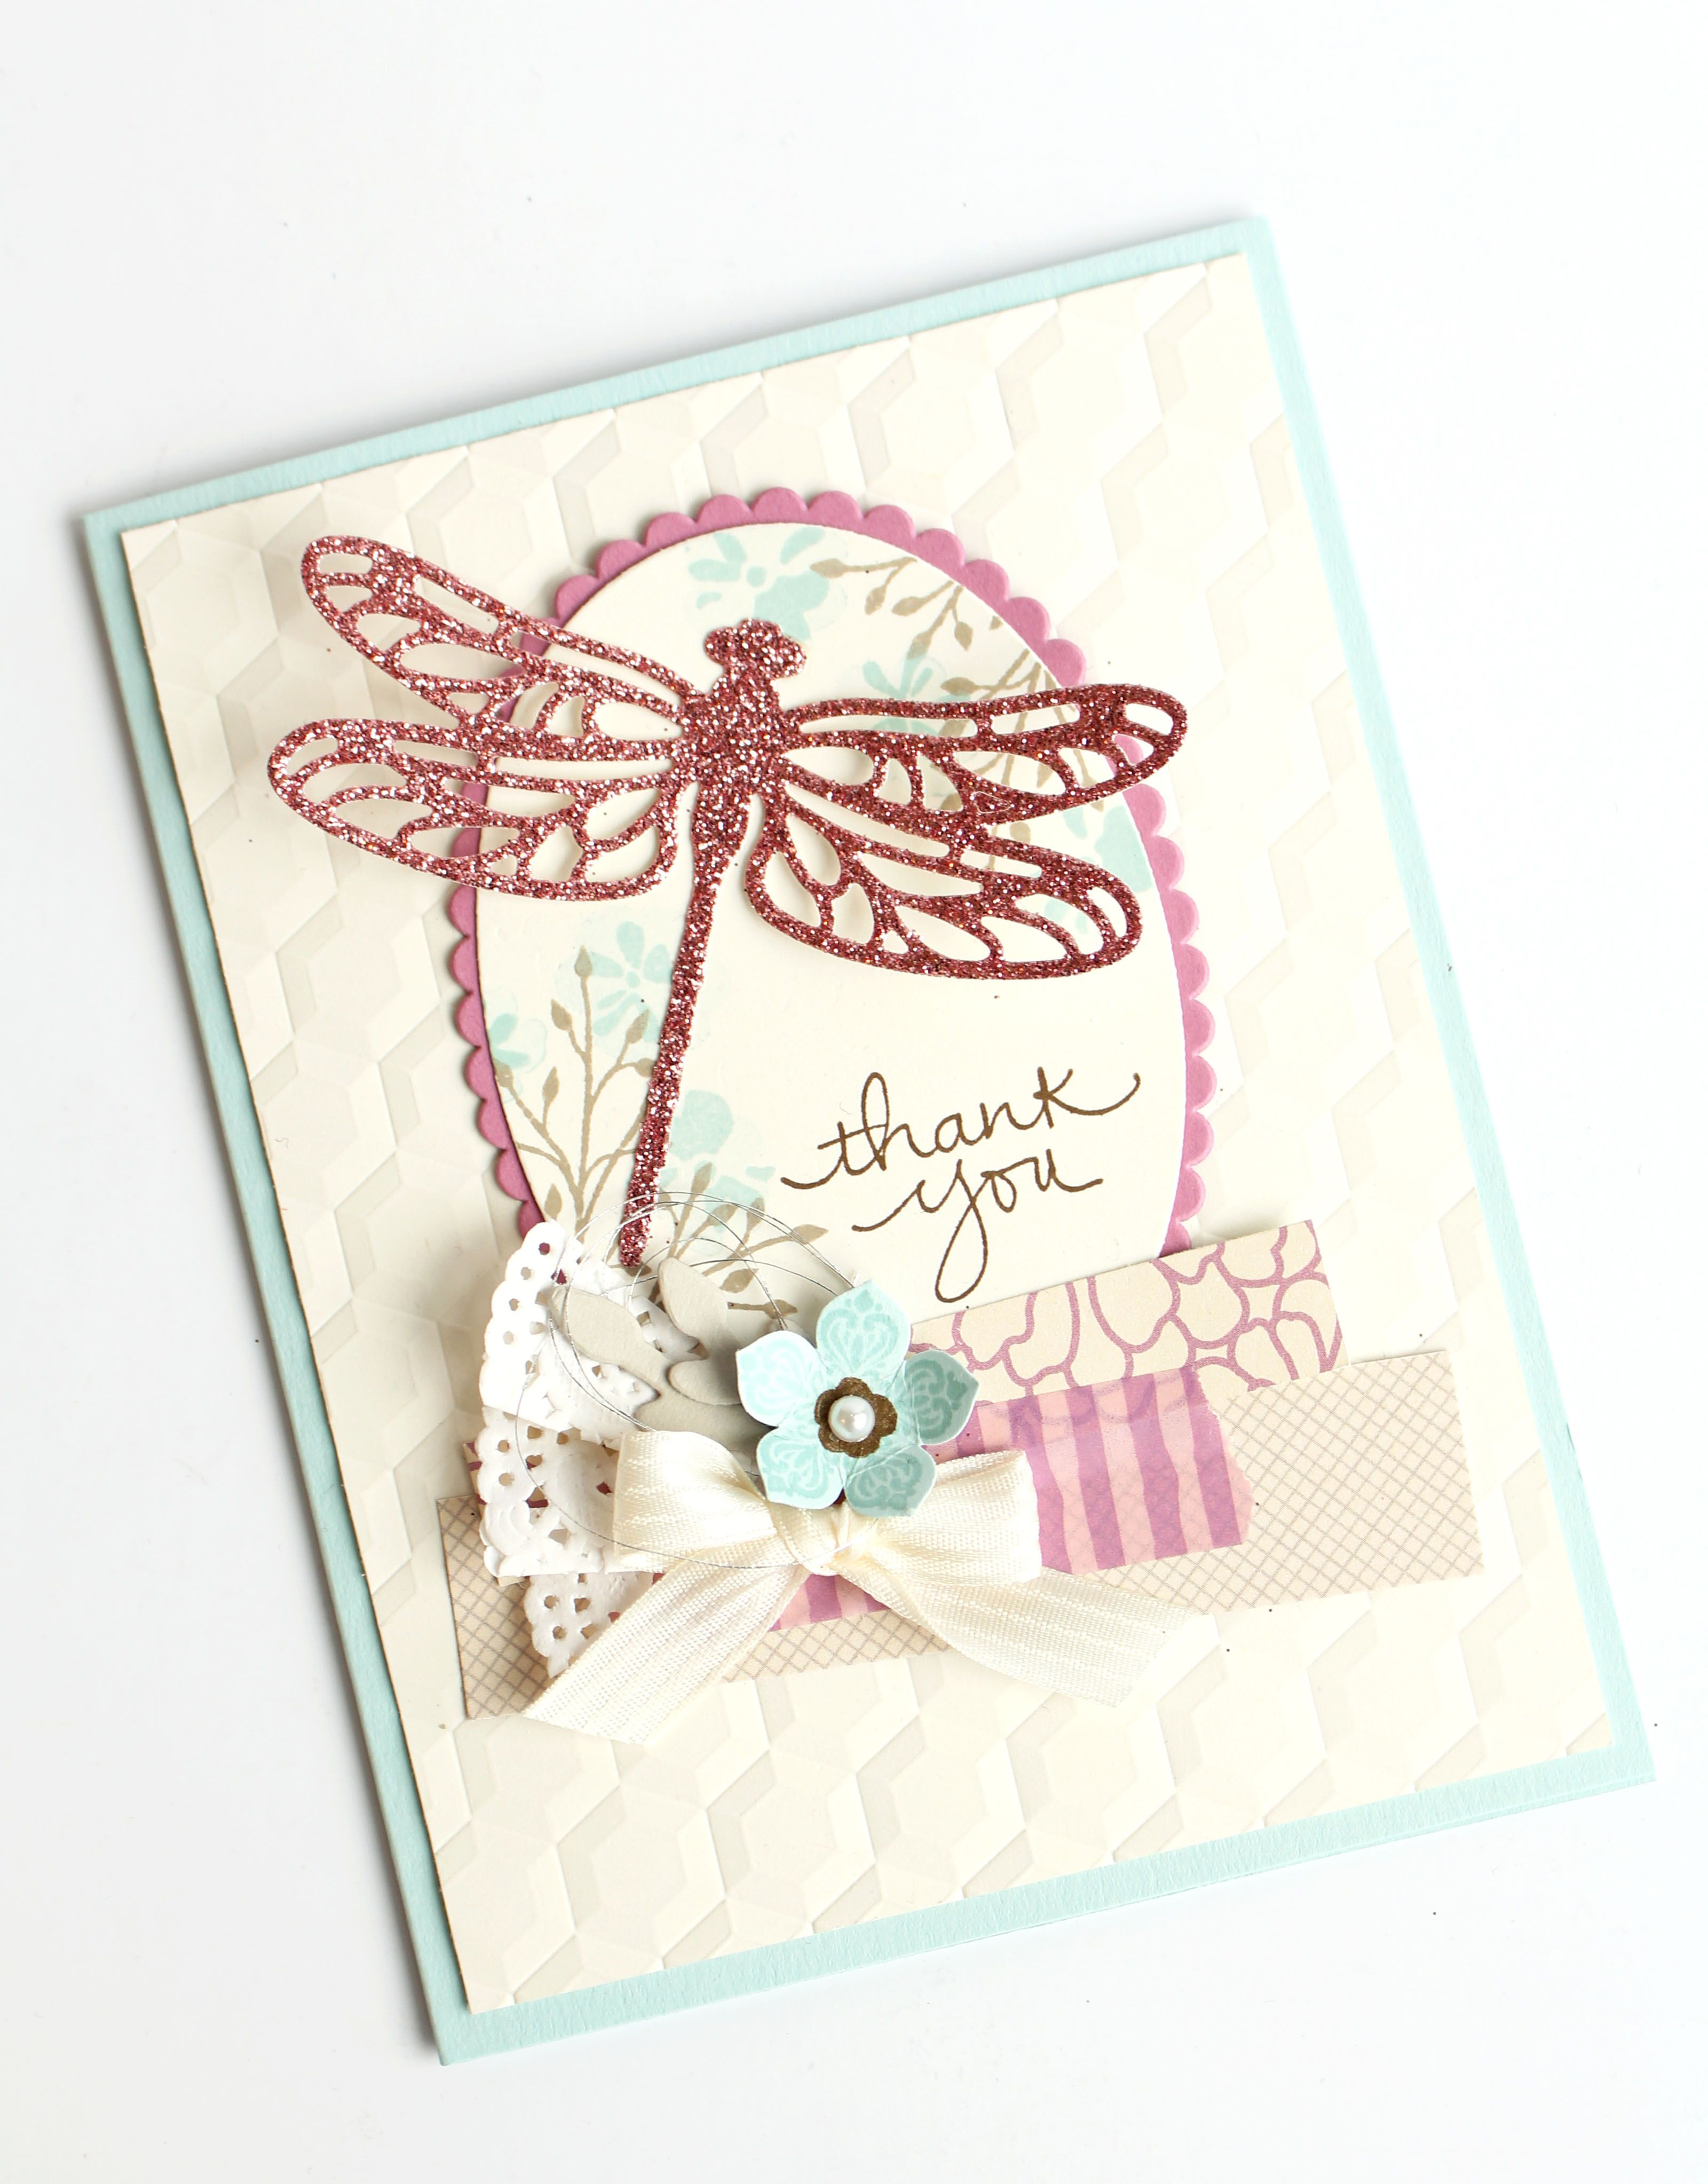 2017 Stampin Up Retirement Sale Meets Dragonfly Dreams Video